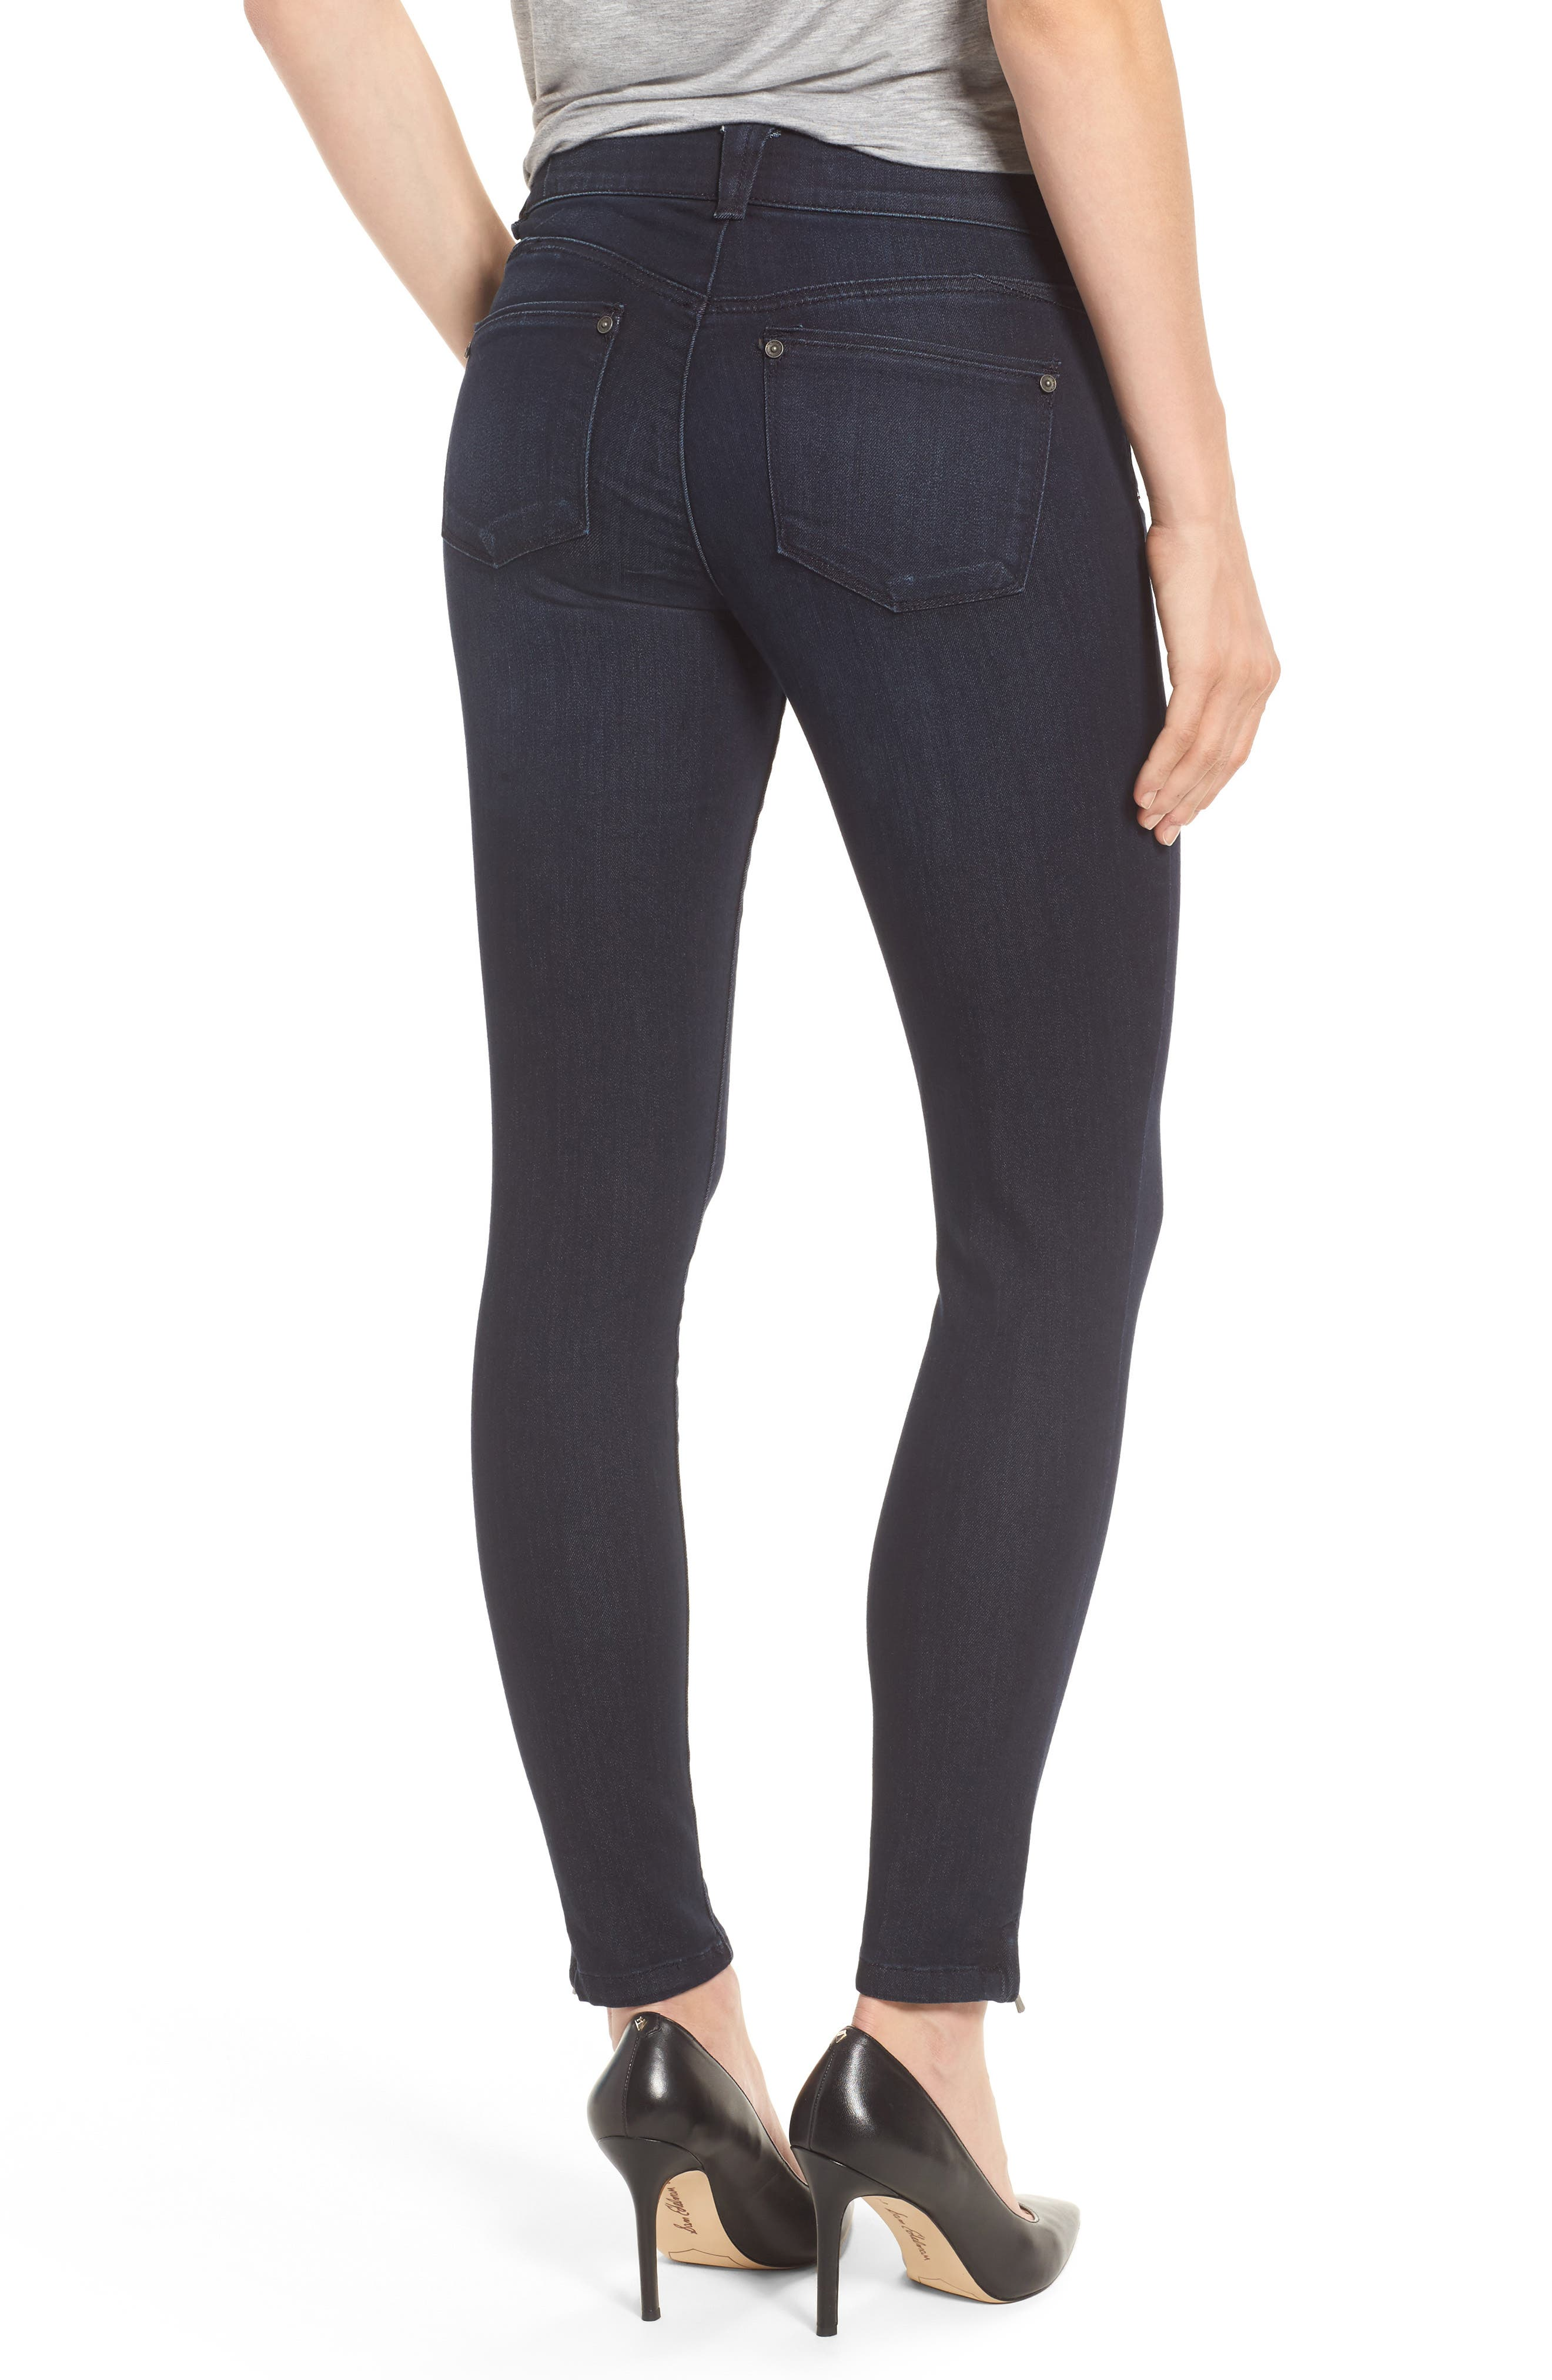 Ab-solution Ankle Zip Skinny Jeans,                             Alternate thumbnail 2, color,                             Indigo